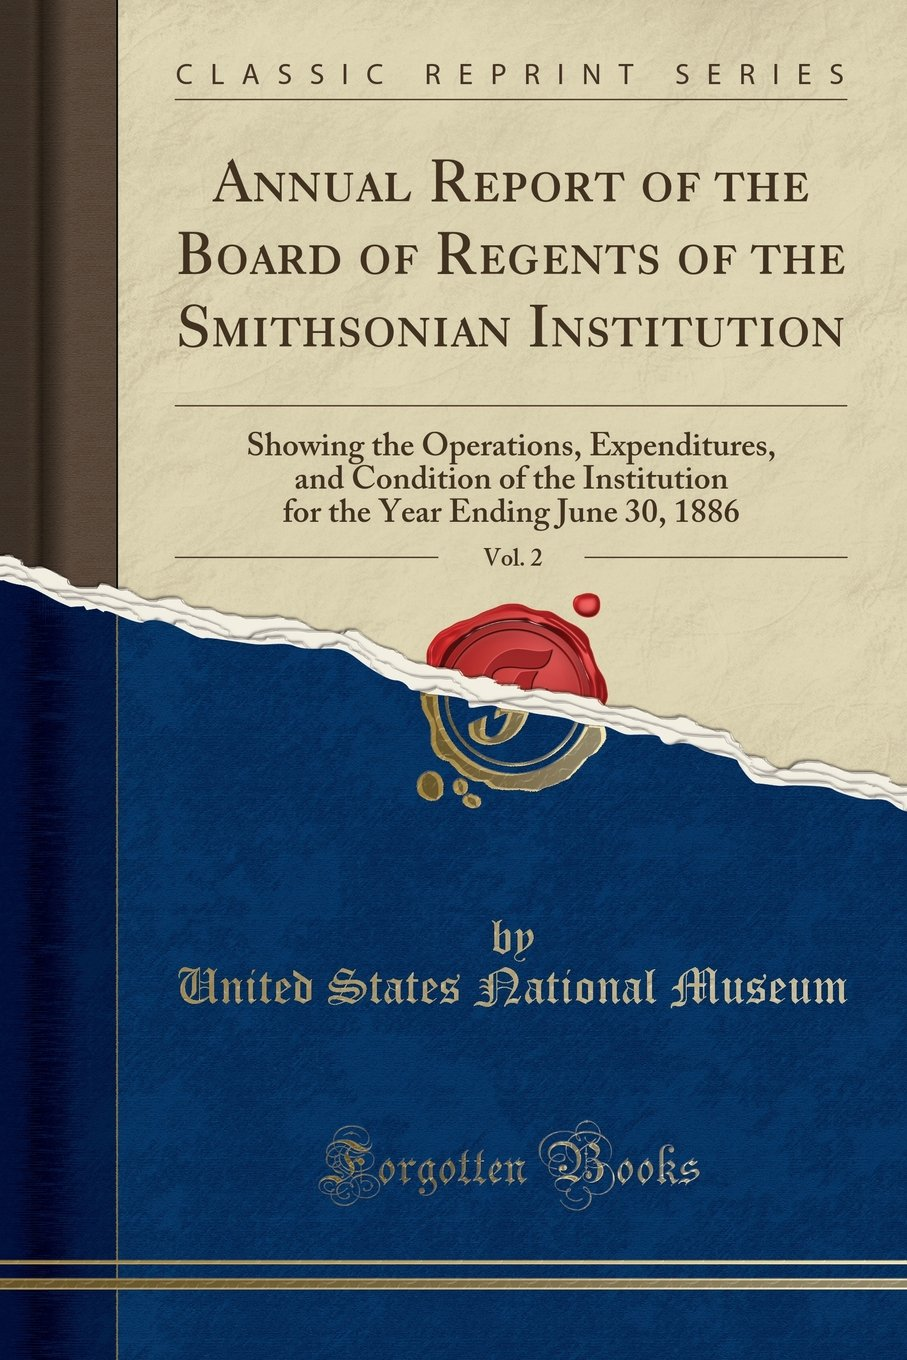 Read Online Annual Report of the Board of Regents of the Smithsonian Institution, Vol. 2: Showing the Operations, Expenditures, and Condition of the Institution for the Year Ending June 30, 1886 (Classic Reprint) PDF